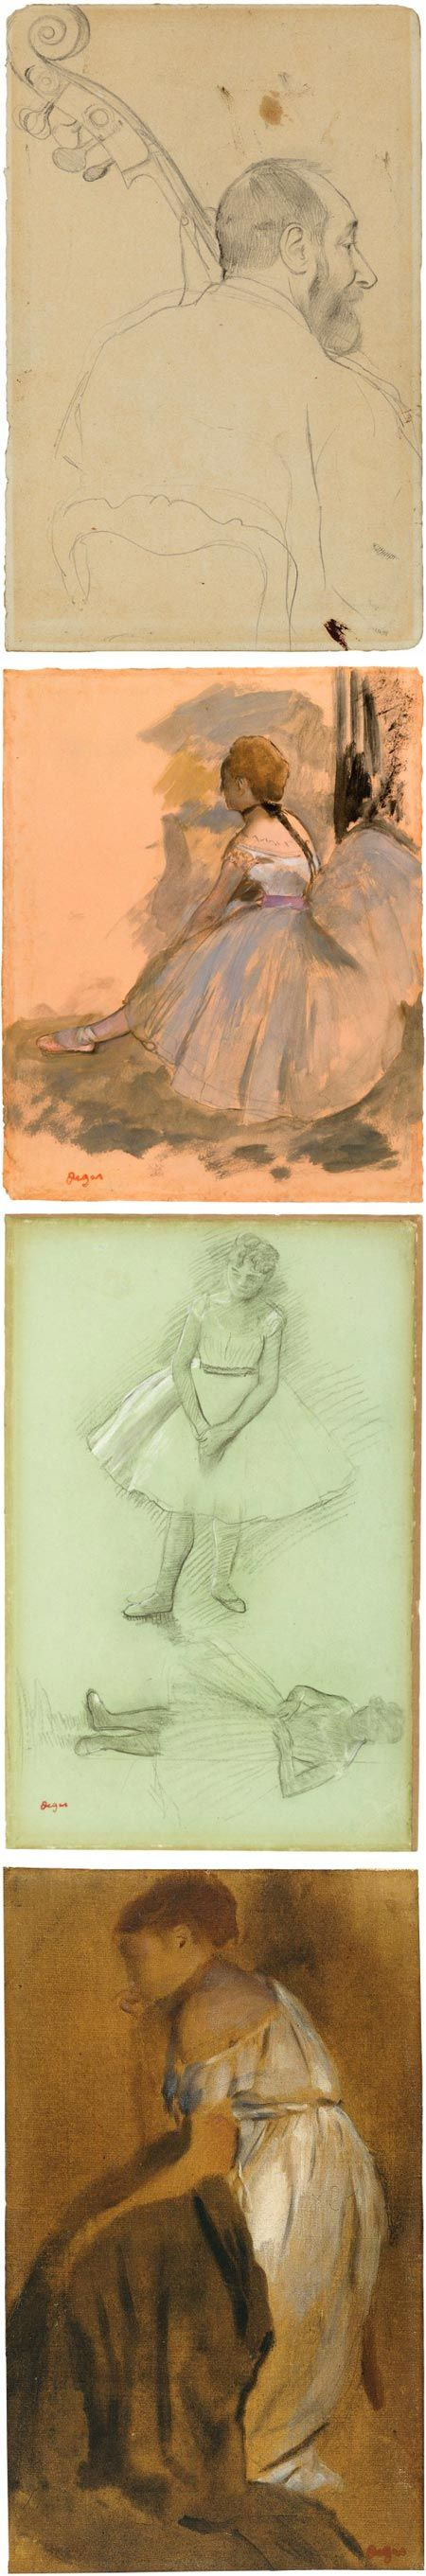 Degas Drawings at the Morgan Library and Museum